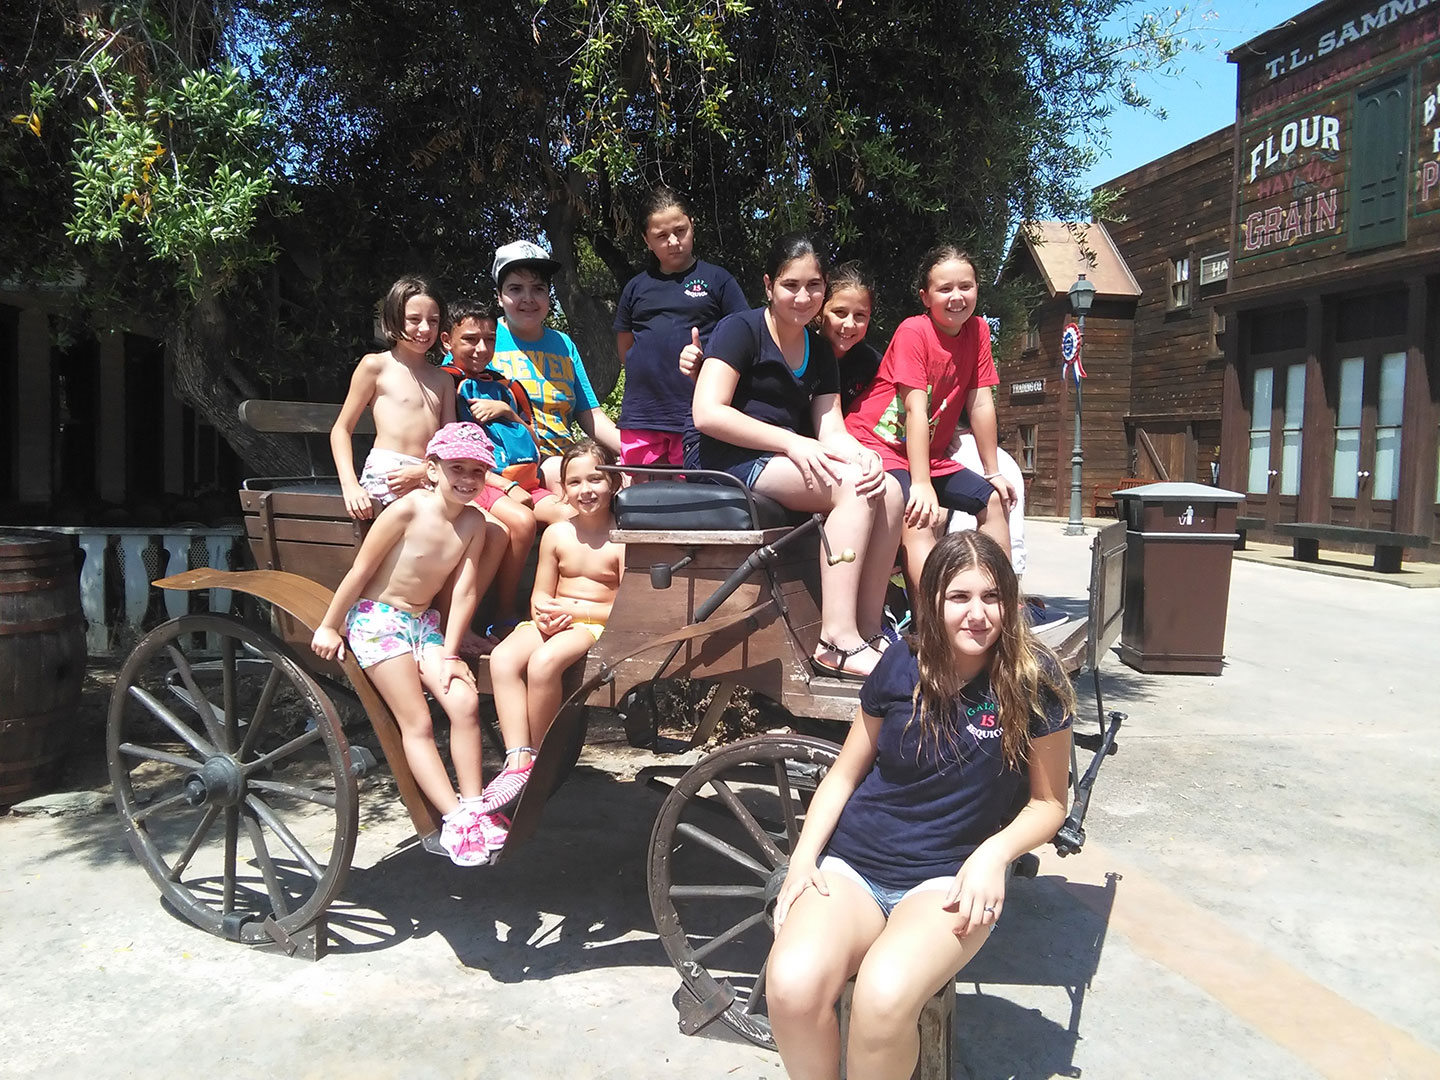 160702-portaventura-sequiol-2-122439